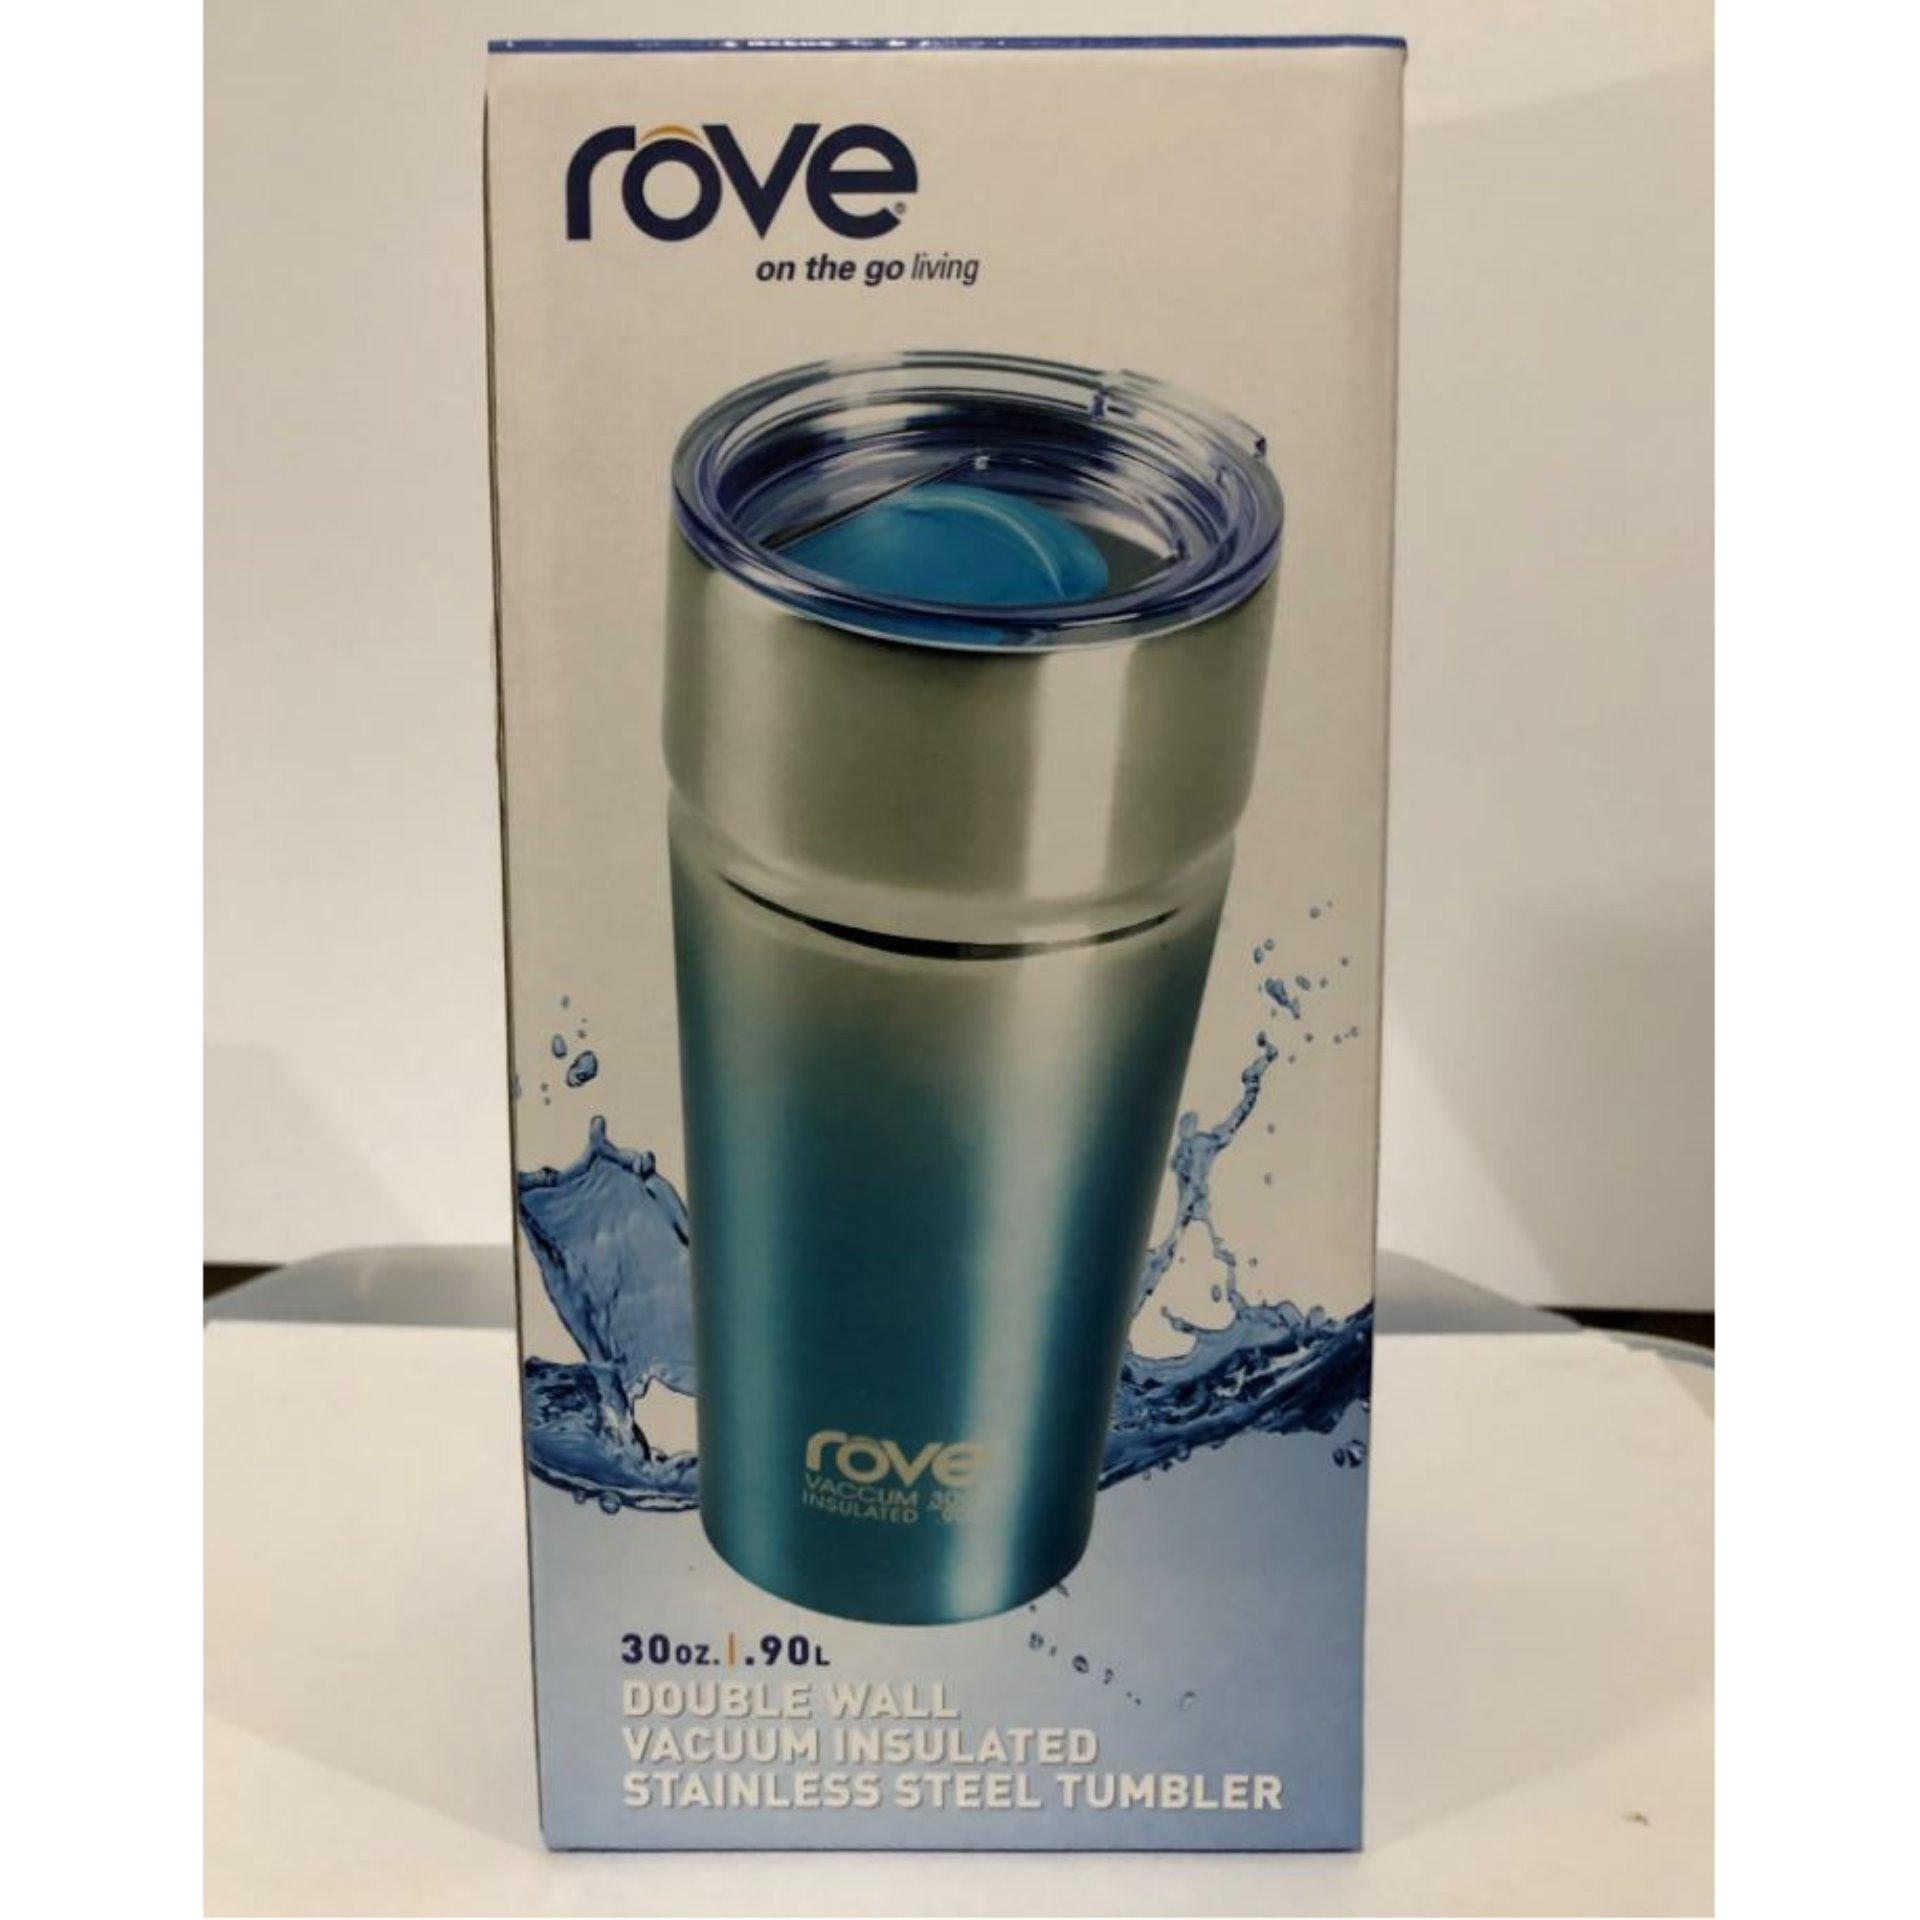 Tumble-Rove Double Wall Vacuum Insulated Stainless Steel Tumbles (30 Oz. / 0.90liter) By Raine & Duke Merchandising.